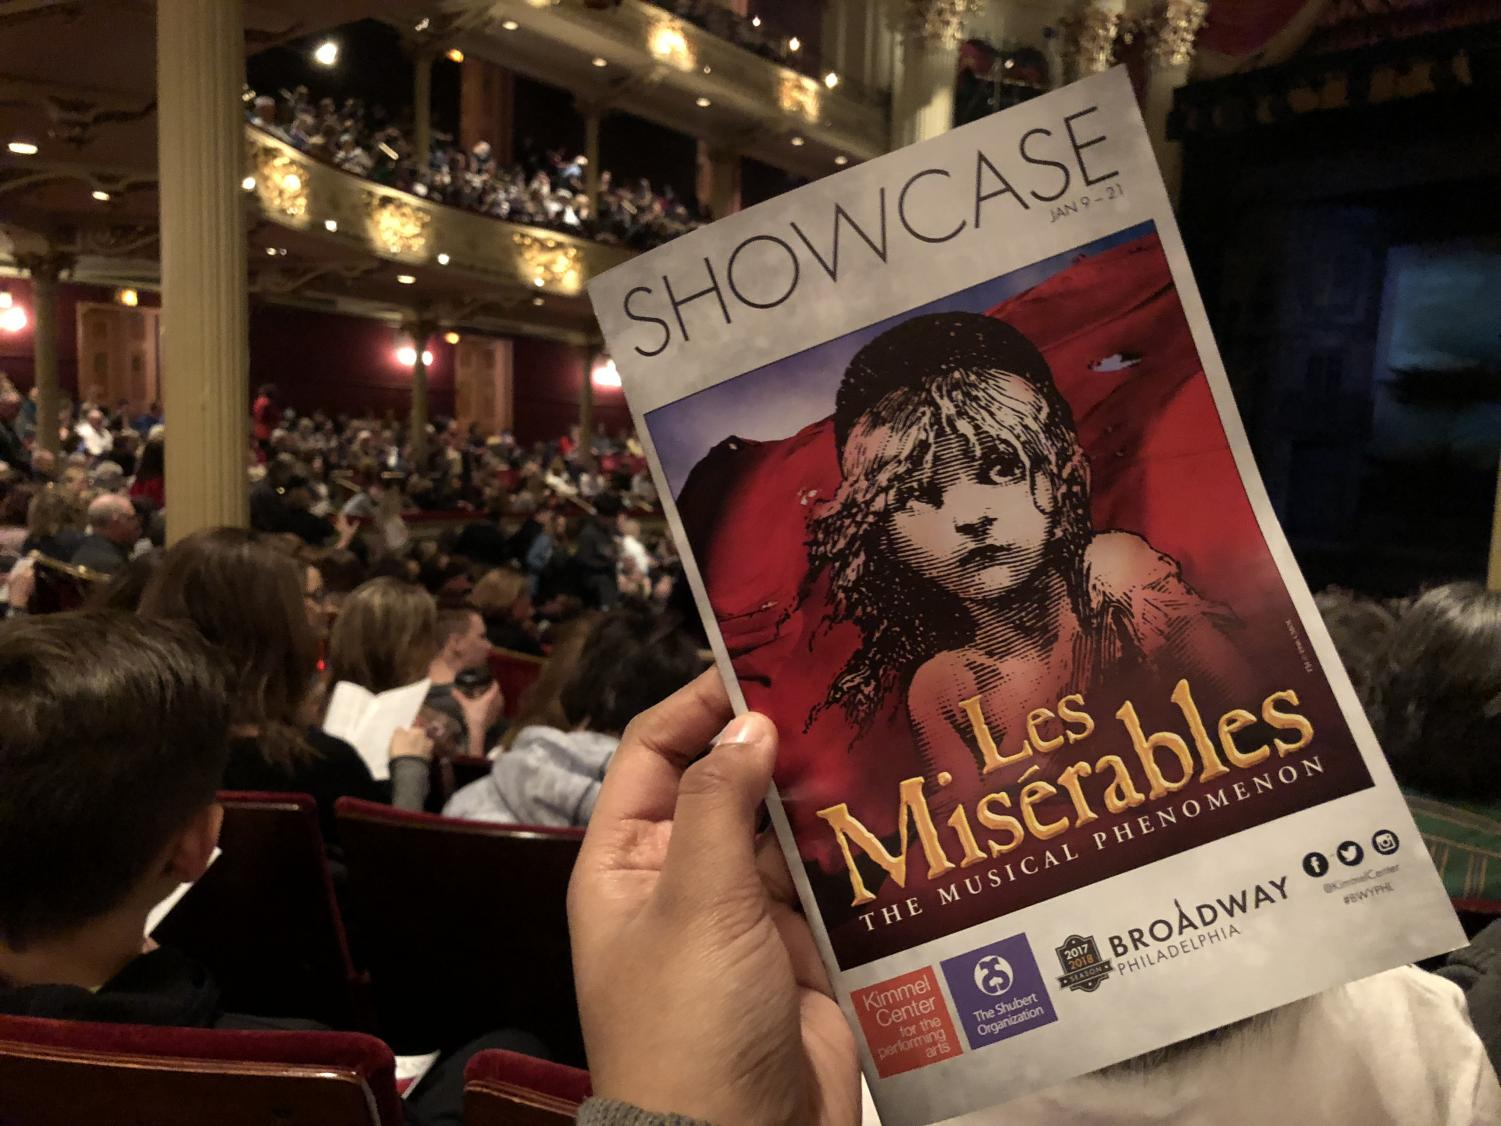 Nina Raman reviews the Academy of Music's recent production of Les Miserables.